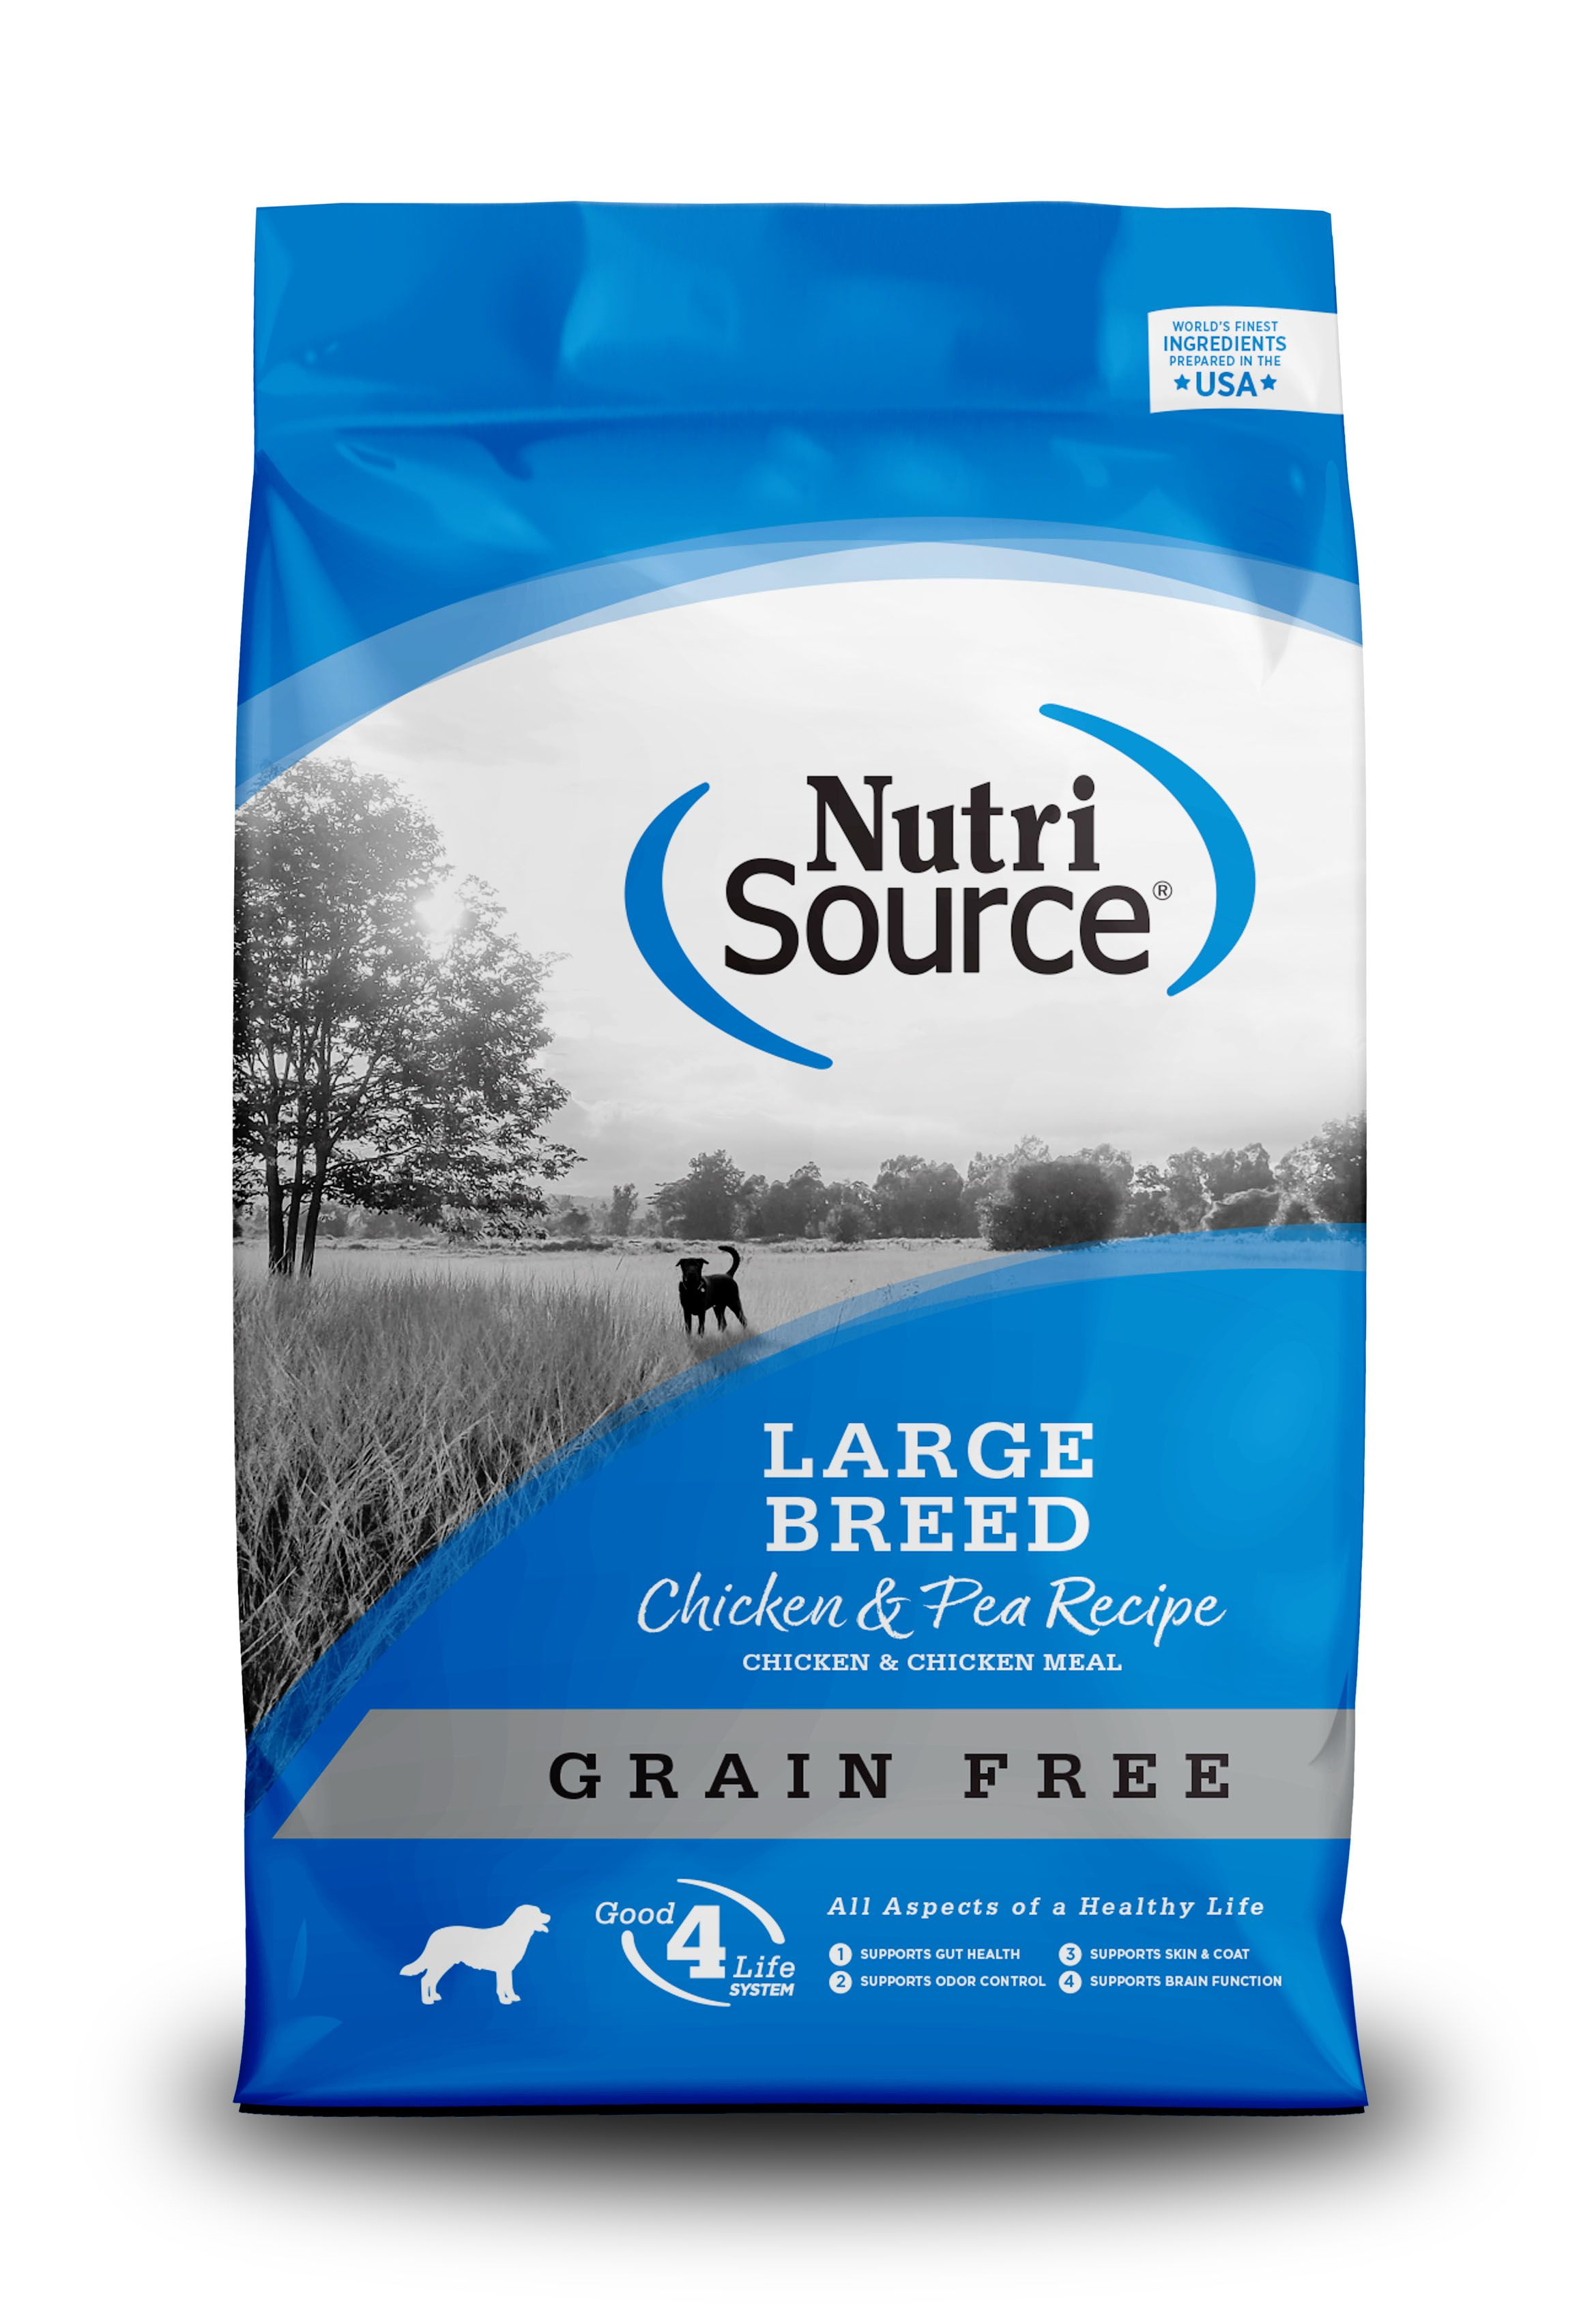 NutriSource Grain Free Large Breed Chicken and Pea Dry Dog Food Image